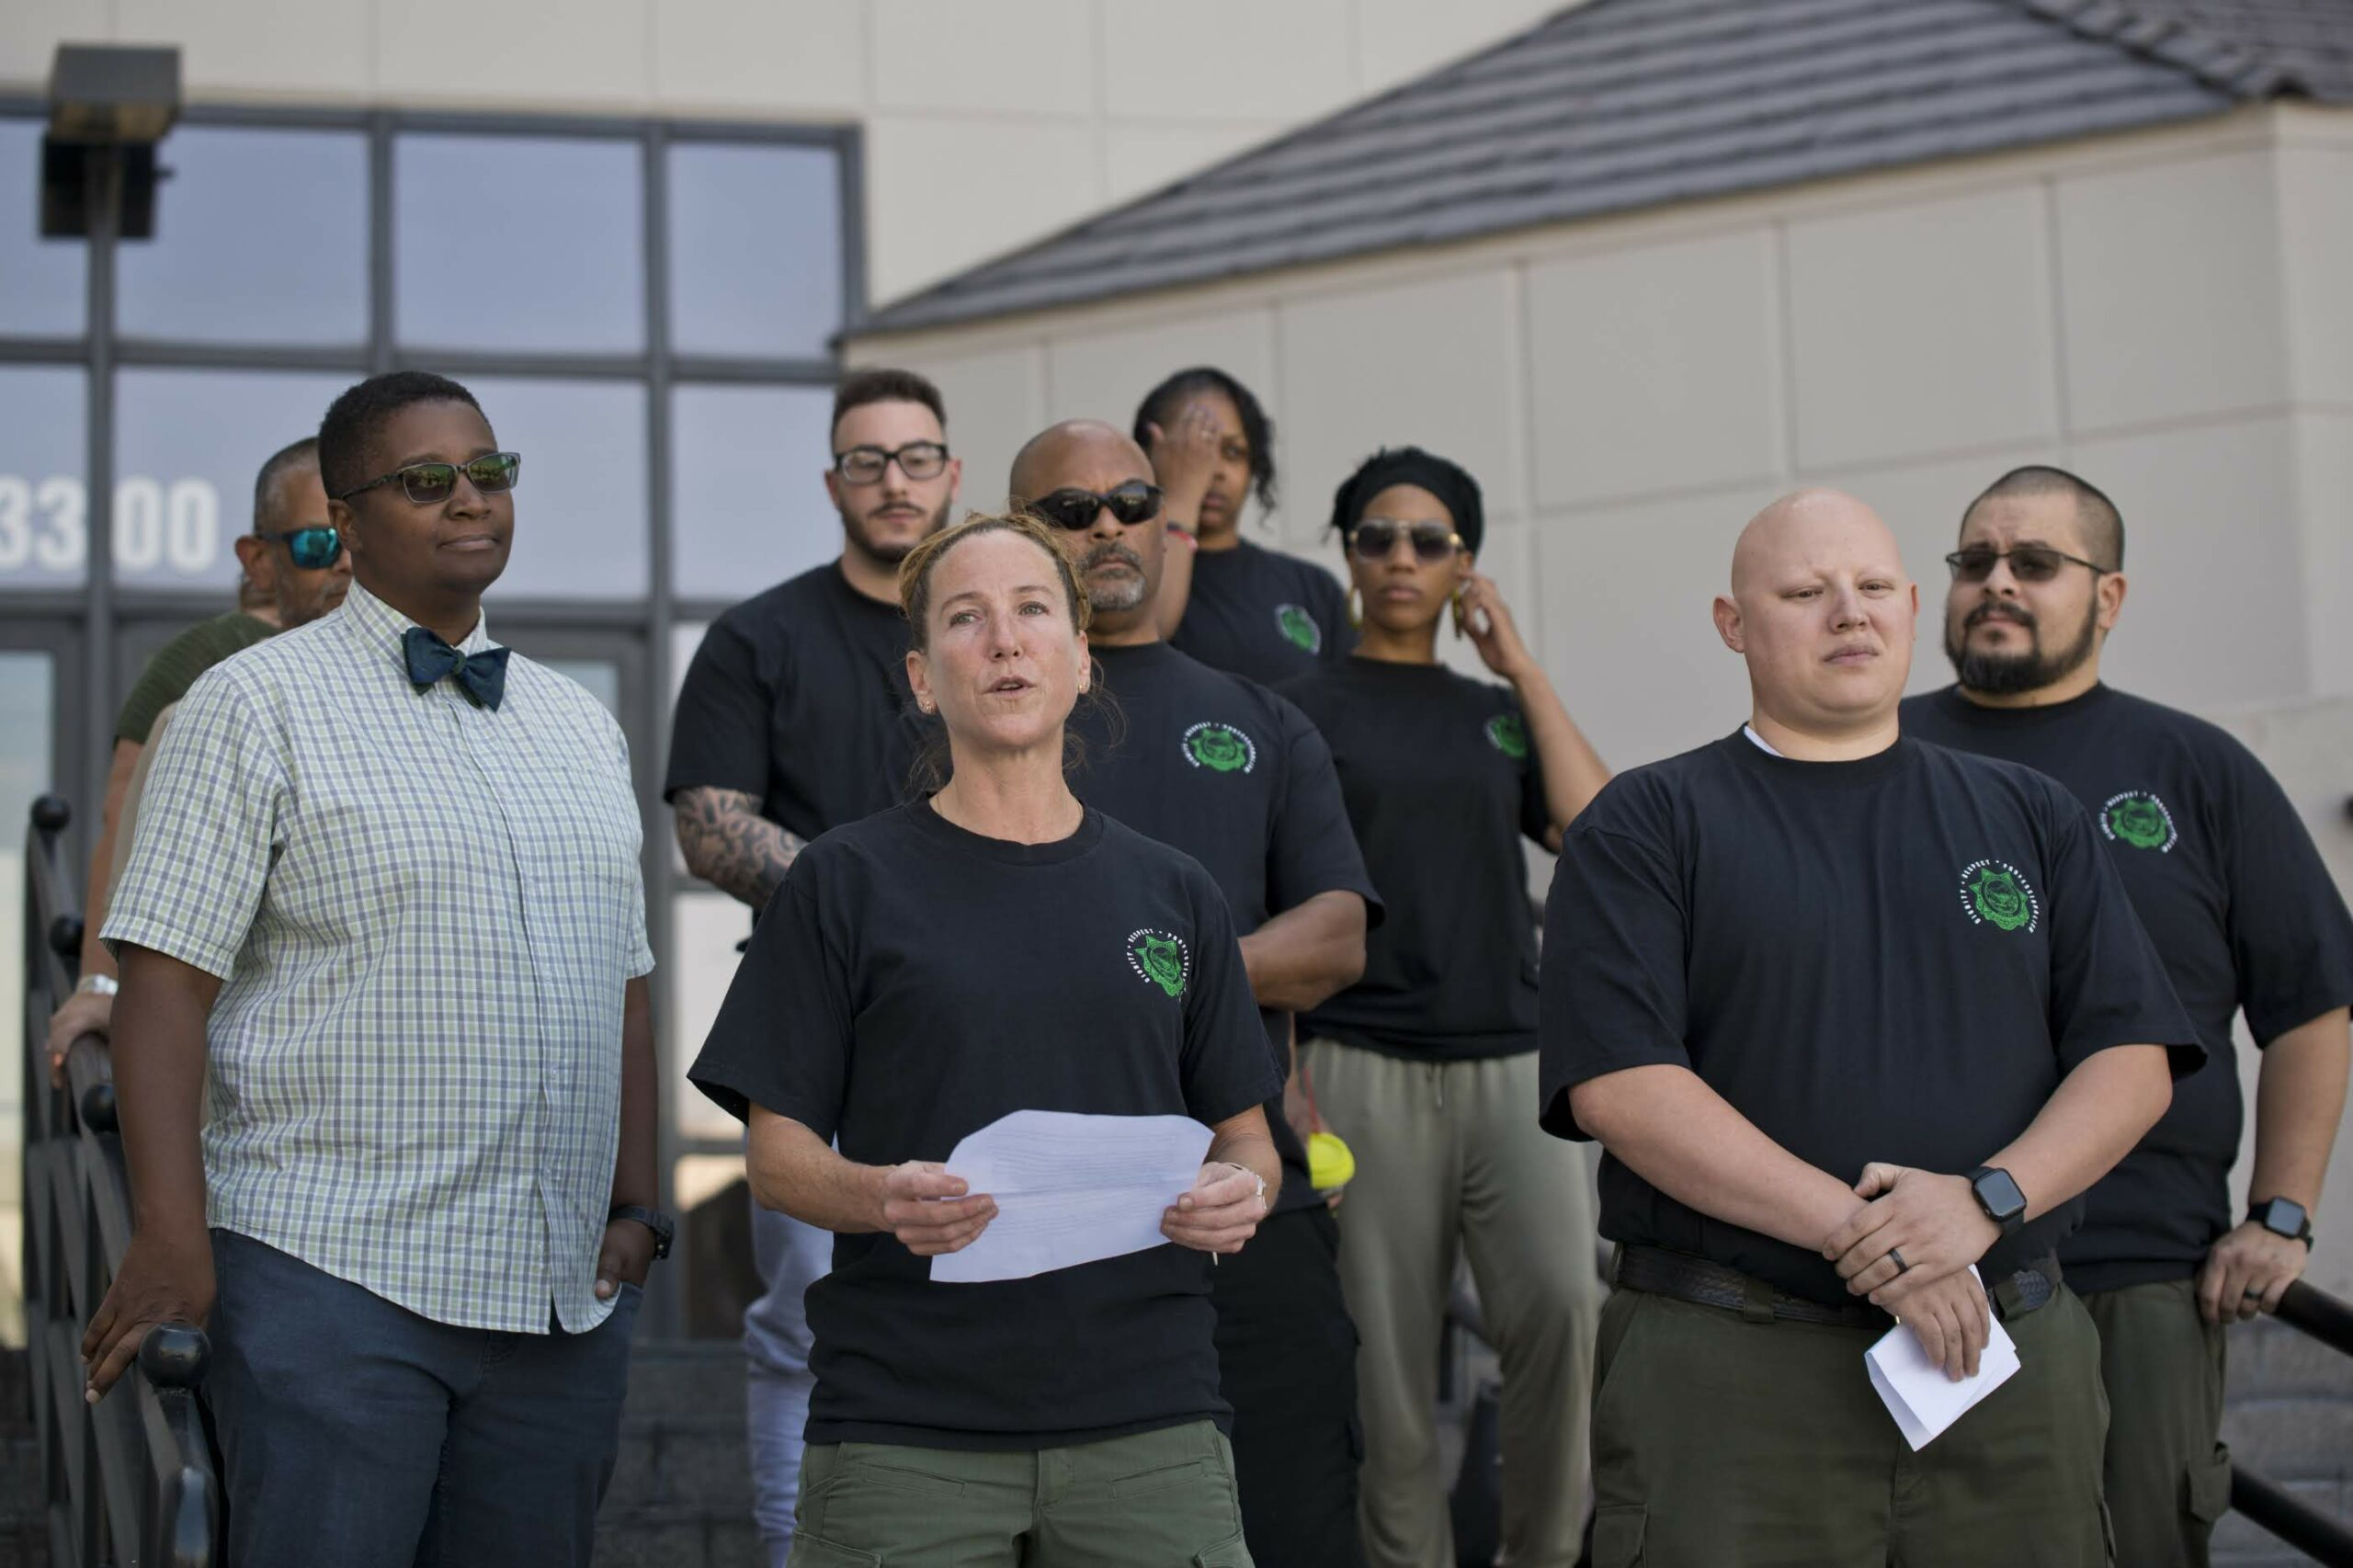 Shari Kassebaum, a correctional sergeant employed by the state, makes a statement before filing for recognition as AFSCME with the Government Employee Management Relations Board in Las Vegas